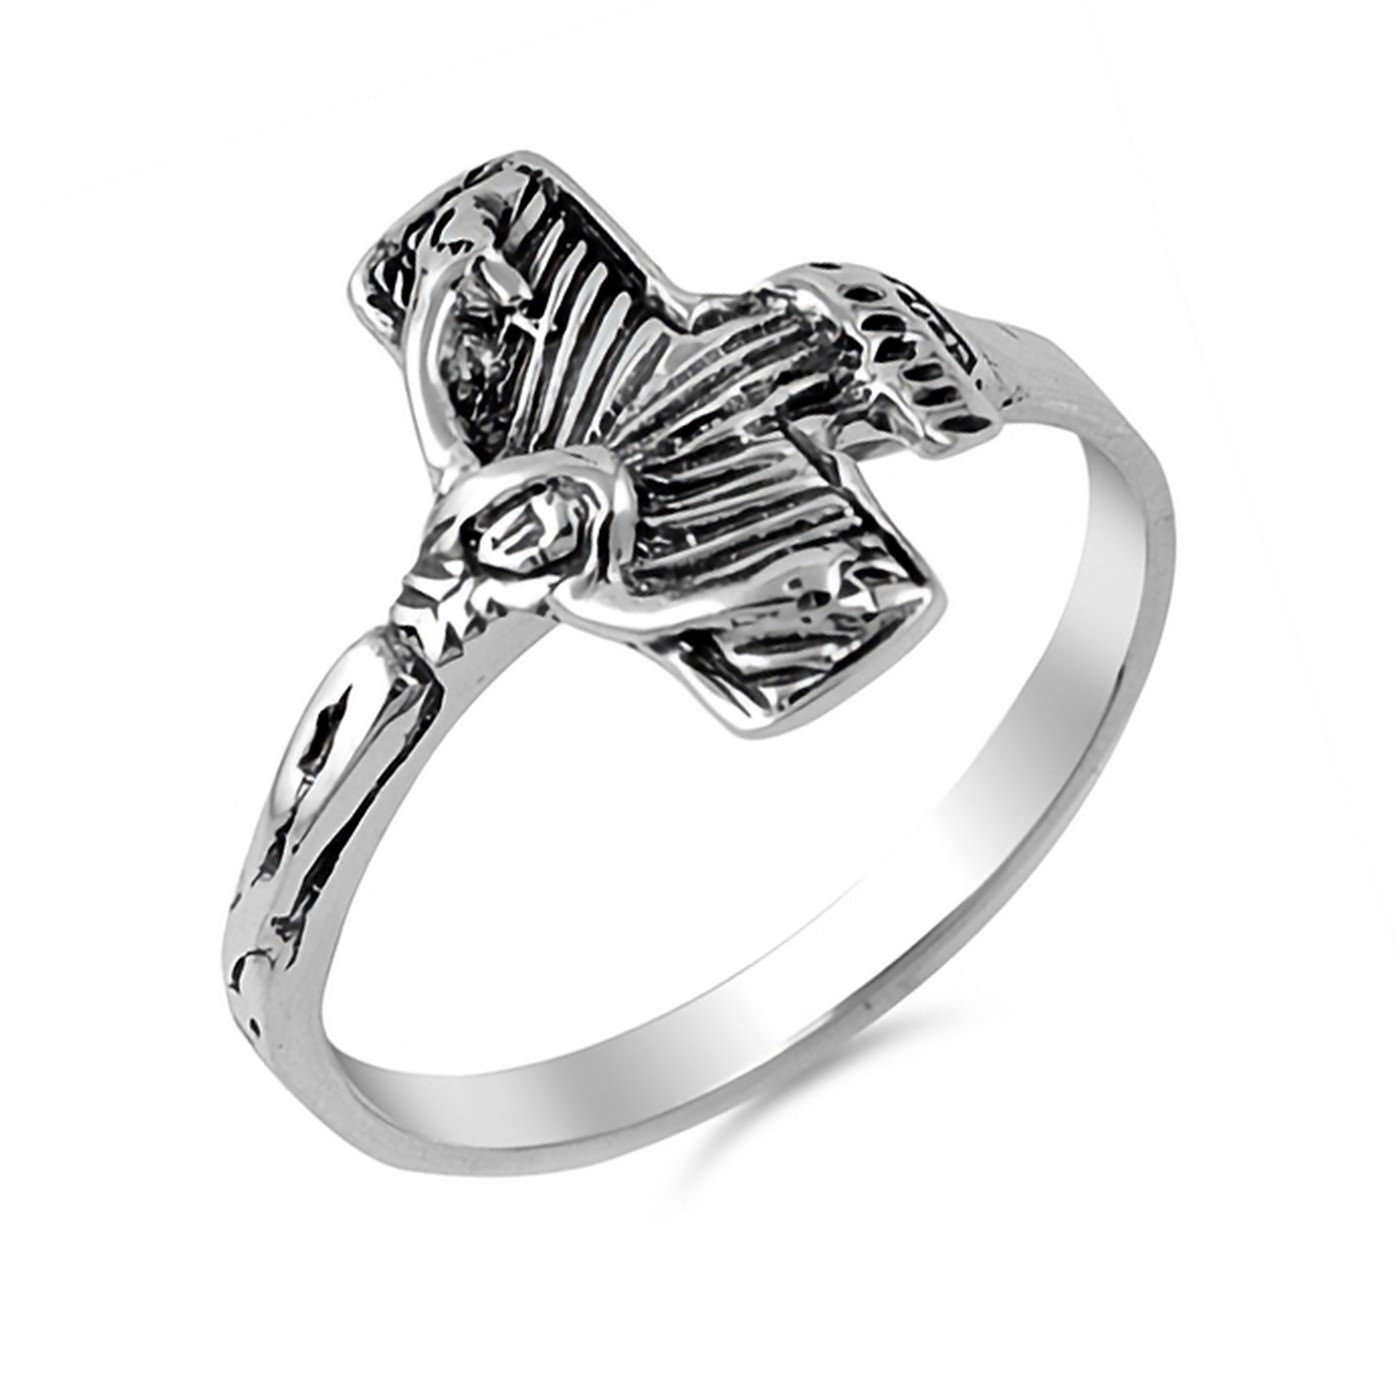 14mm Crucifix Cross 925 Sterling Silver Ring Sizes 5-10